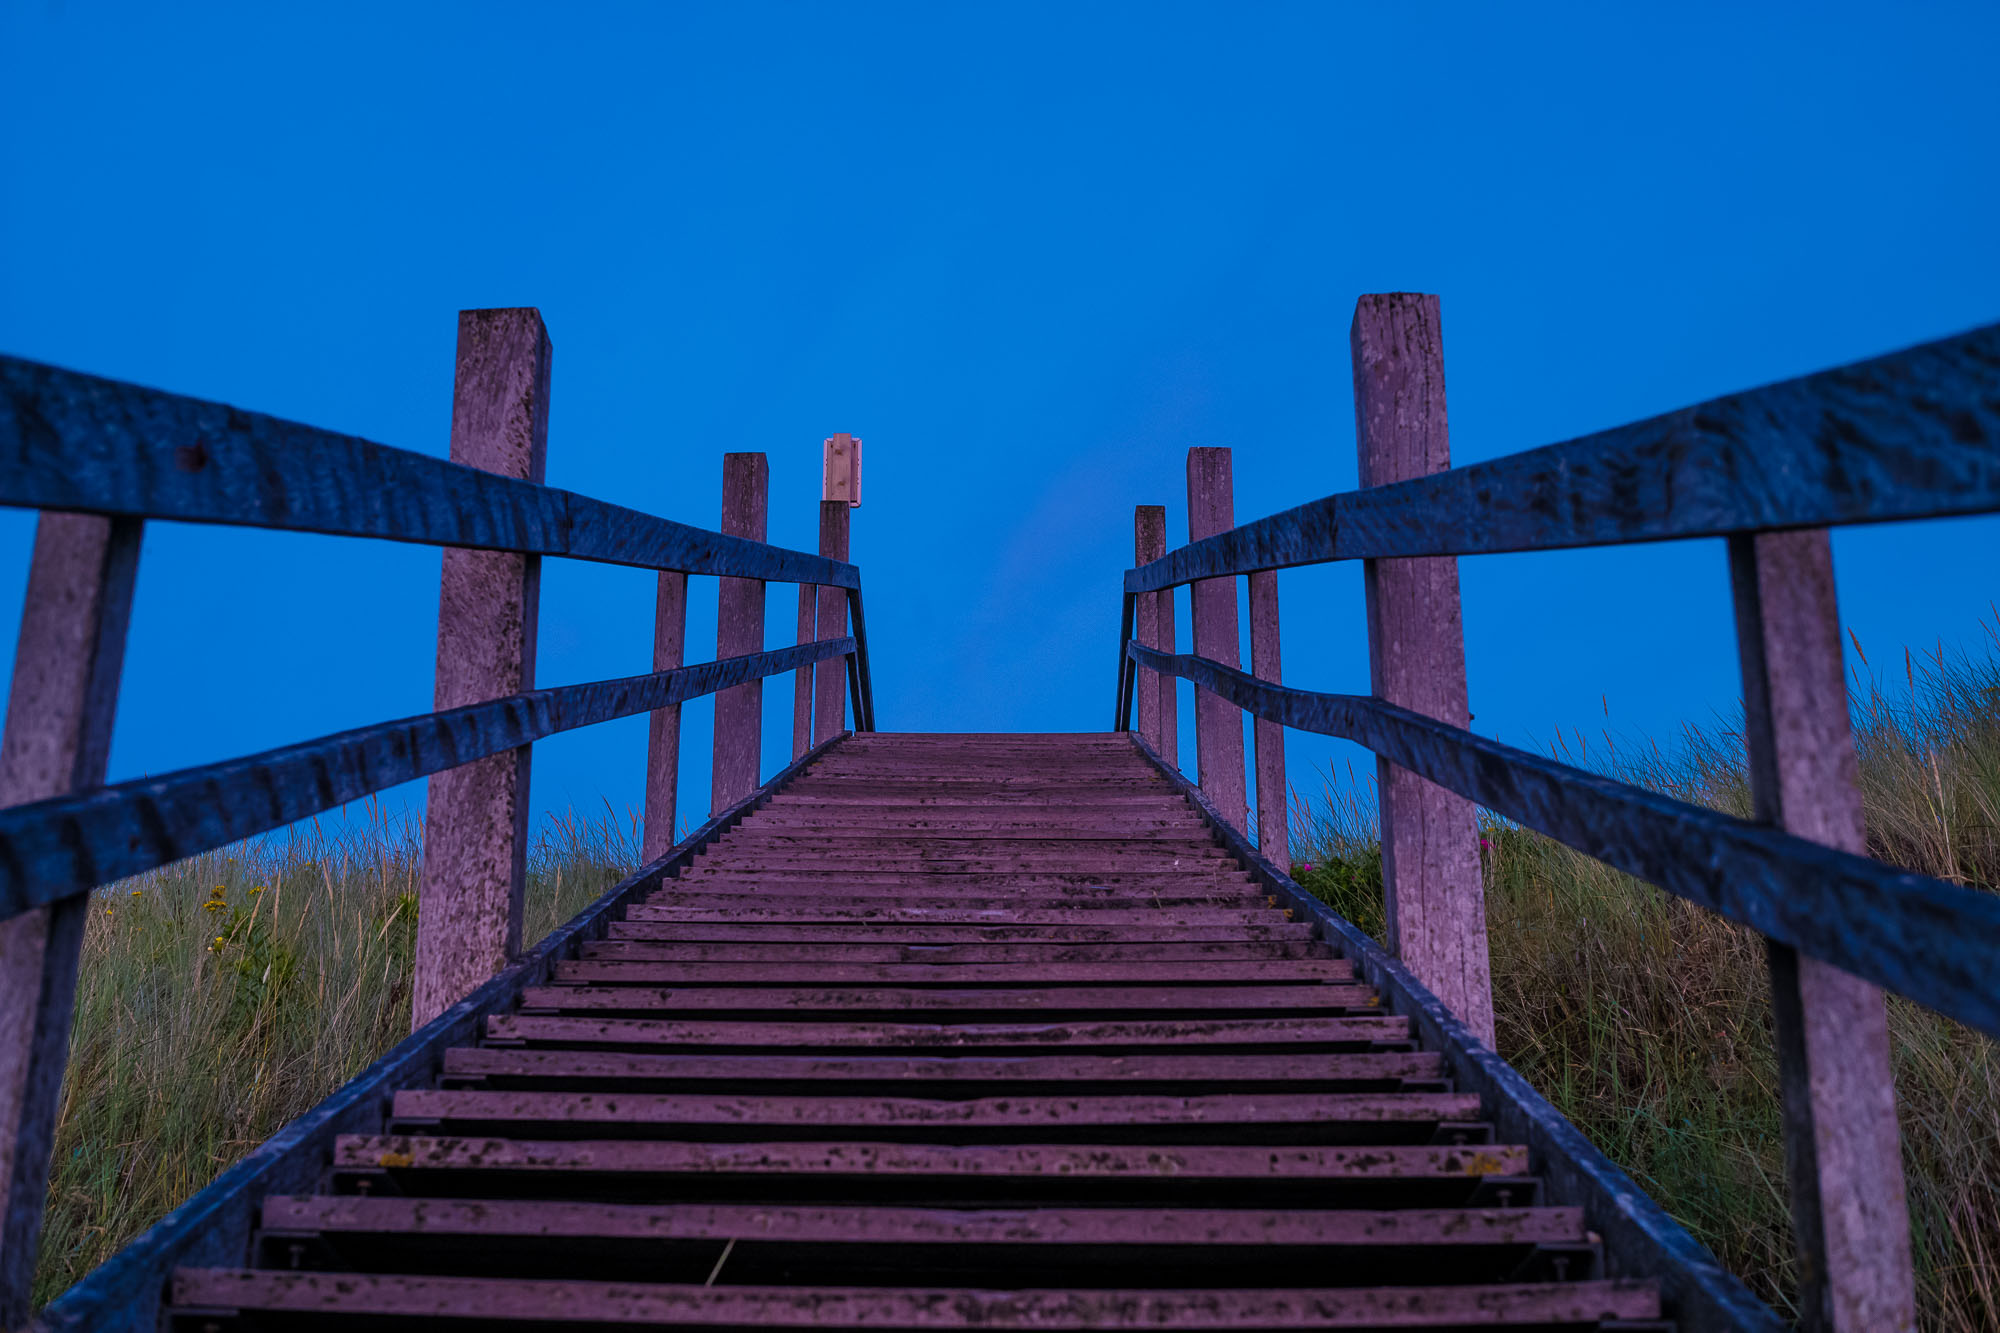 Staircase at Domburg beach, bathed in pinkish sunset light